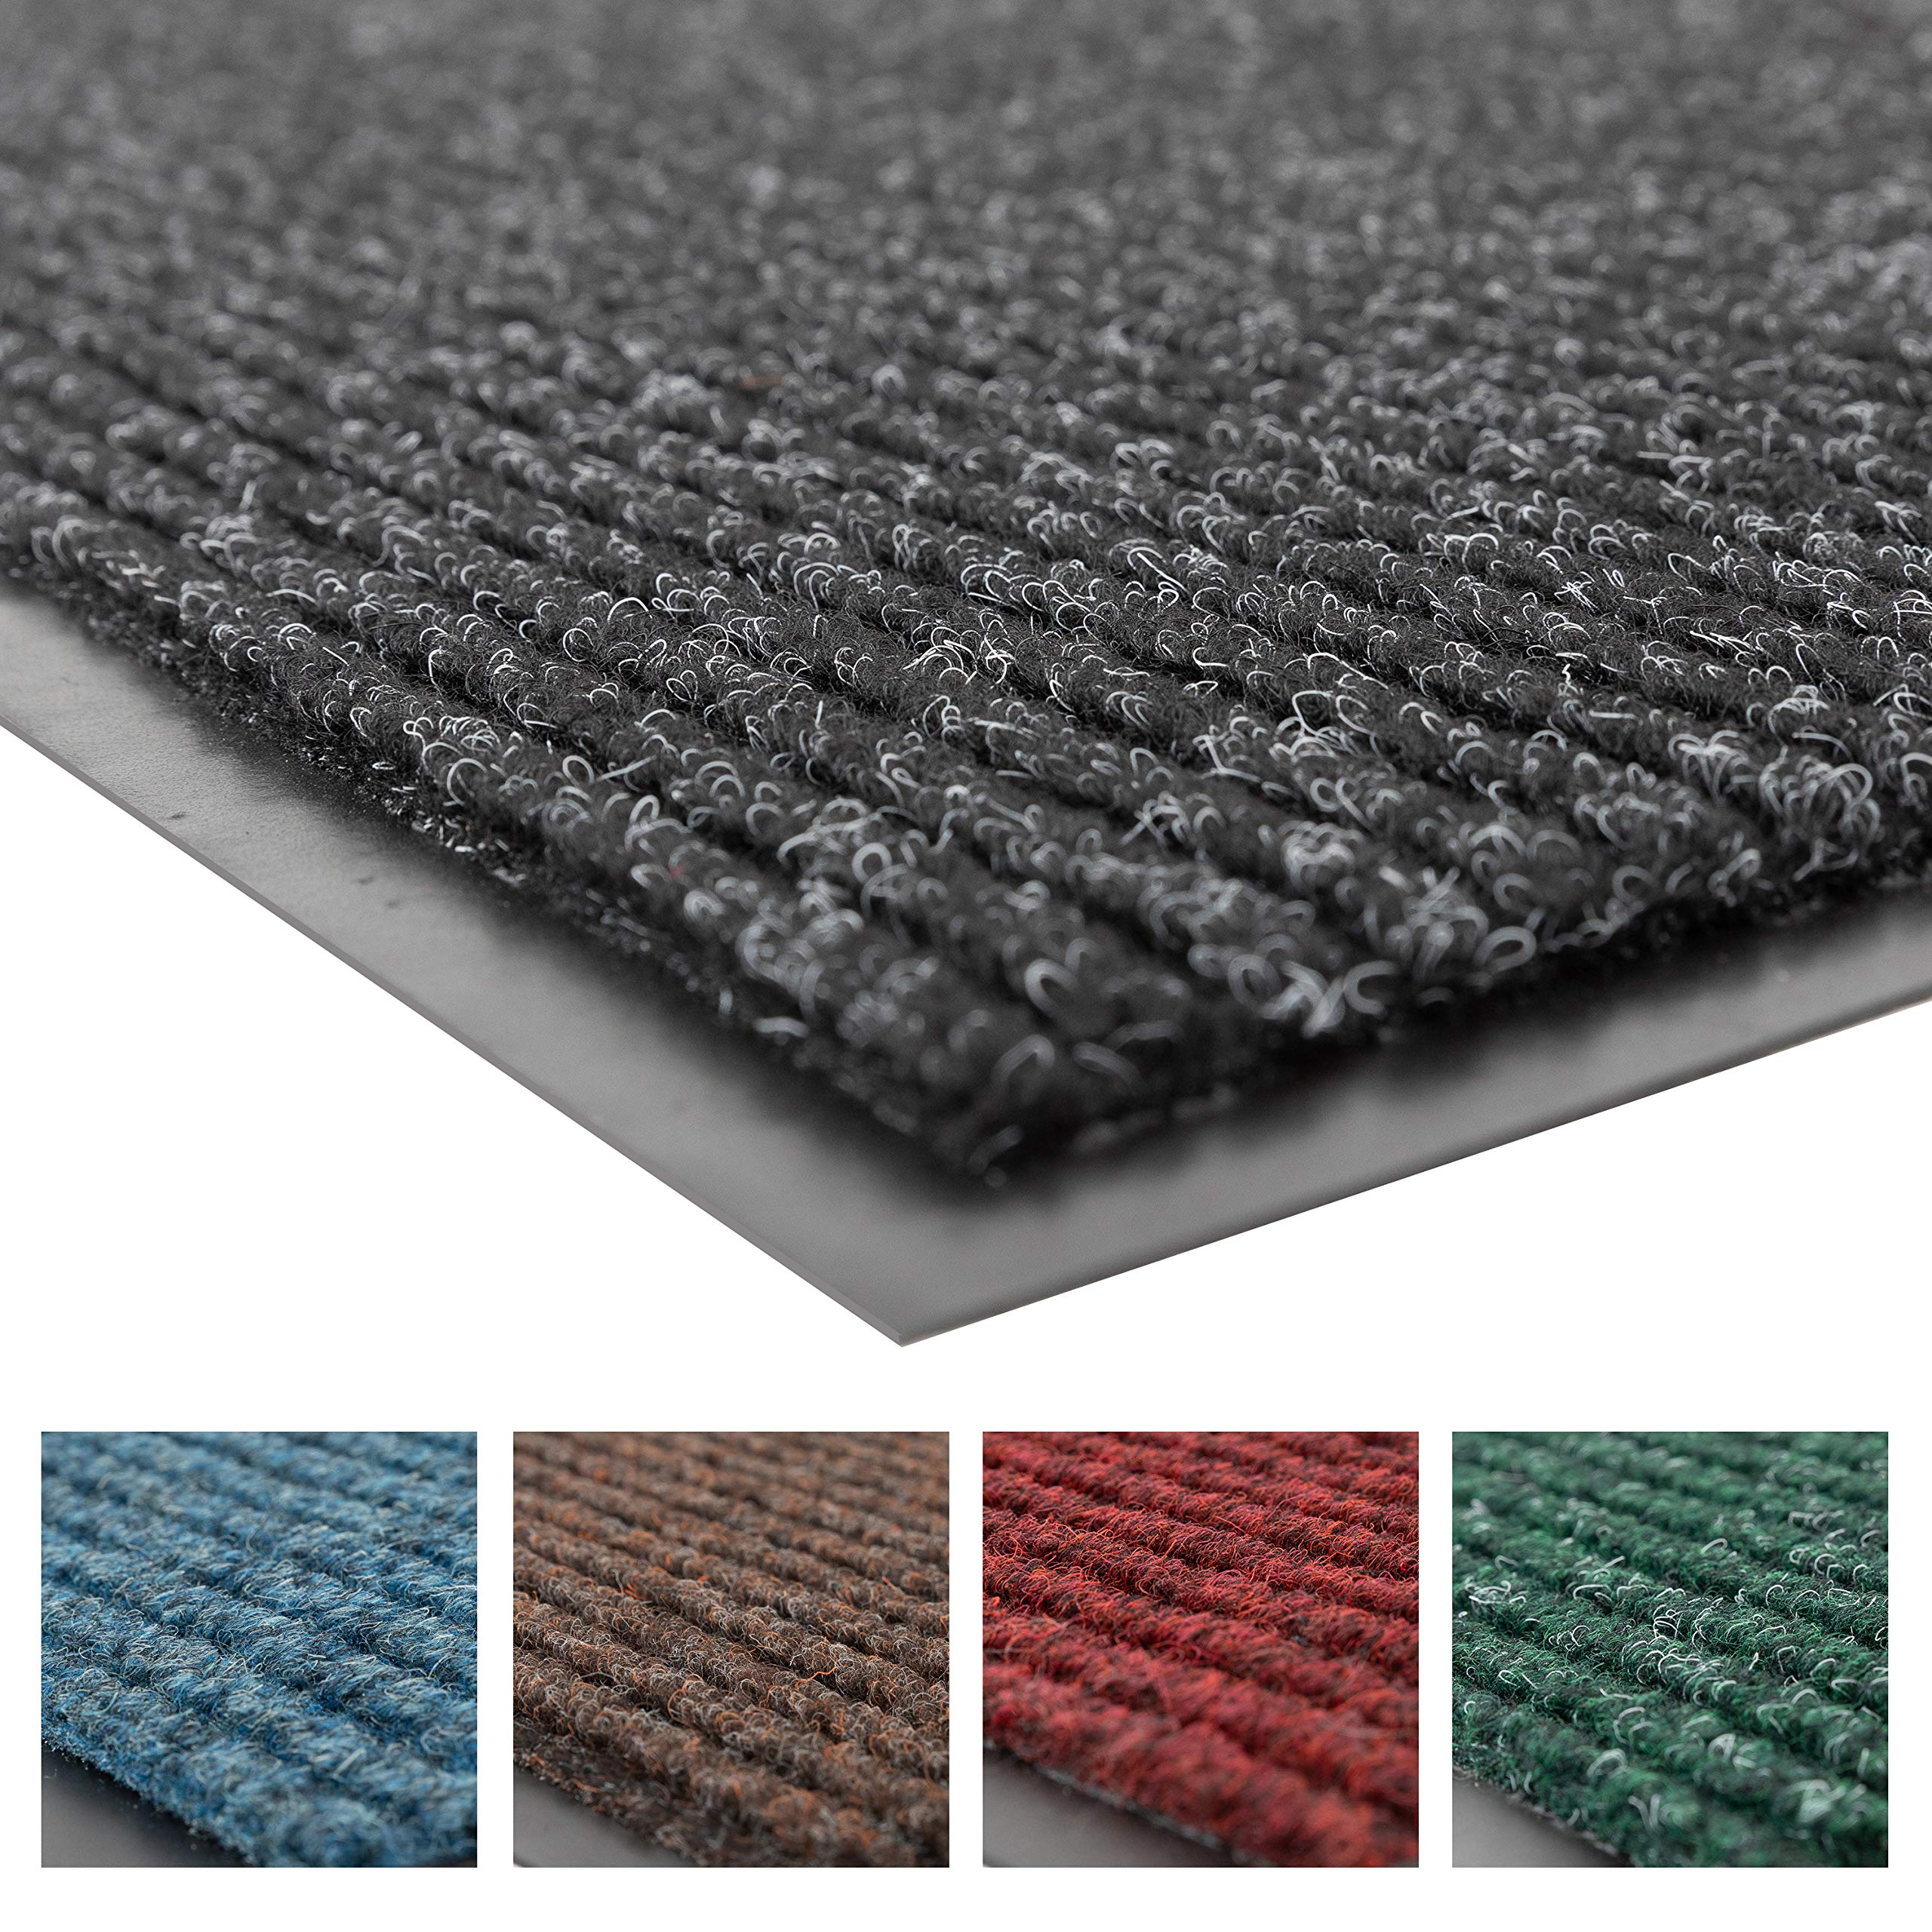 Notrax 109 Brush Step Entrance Mat, for Home or Office, 4' X 6' Charcoal by NoTrax Floor Matting